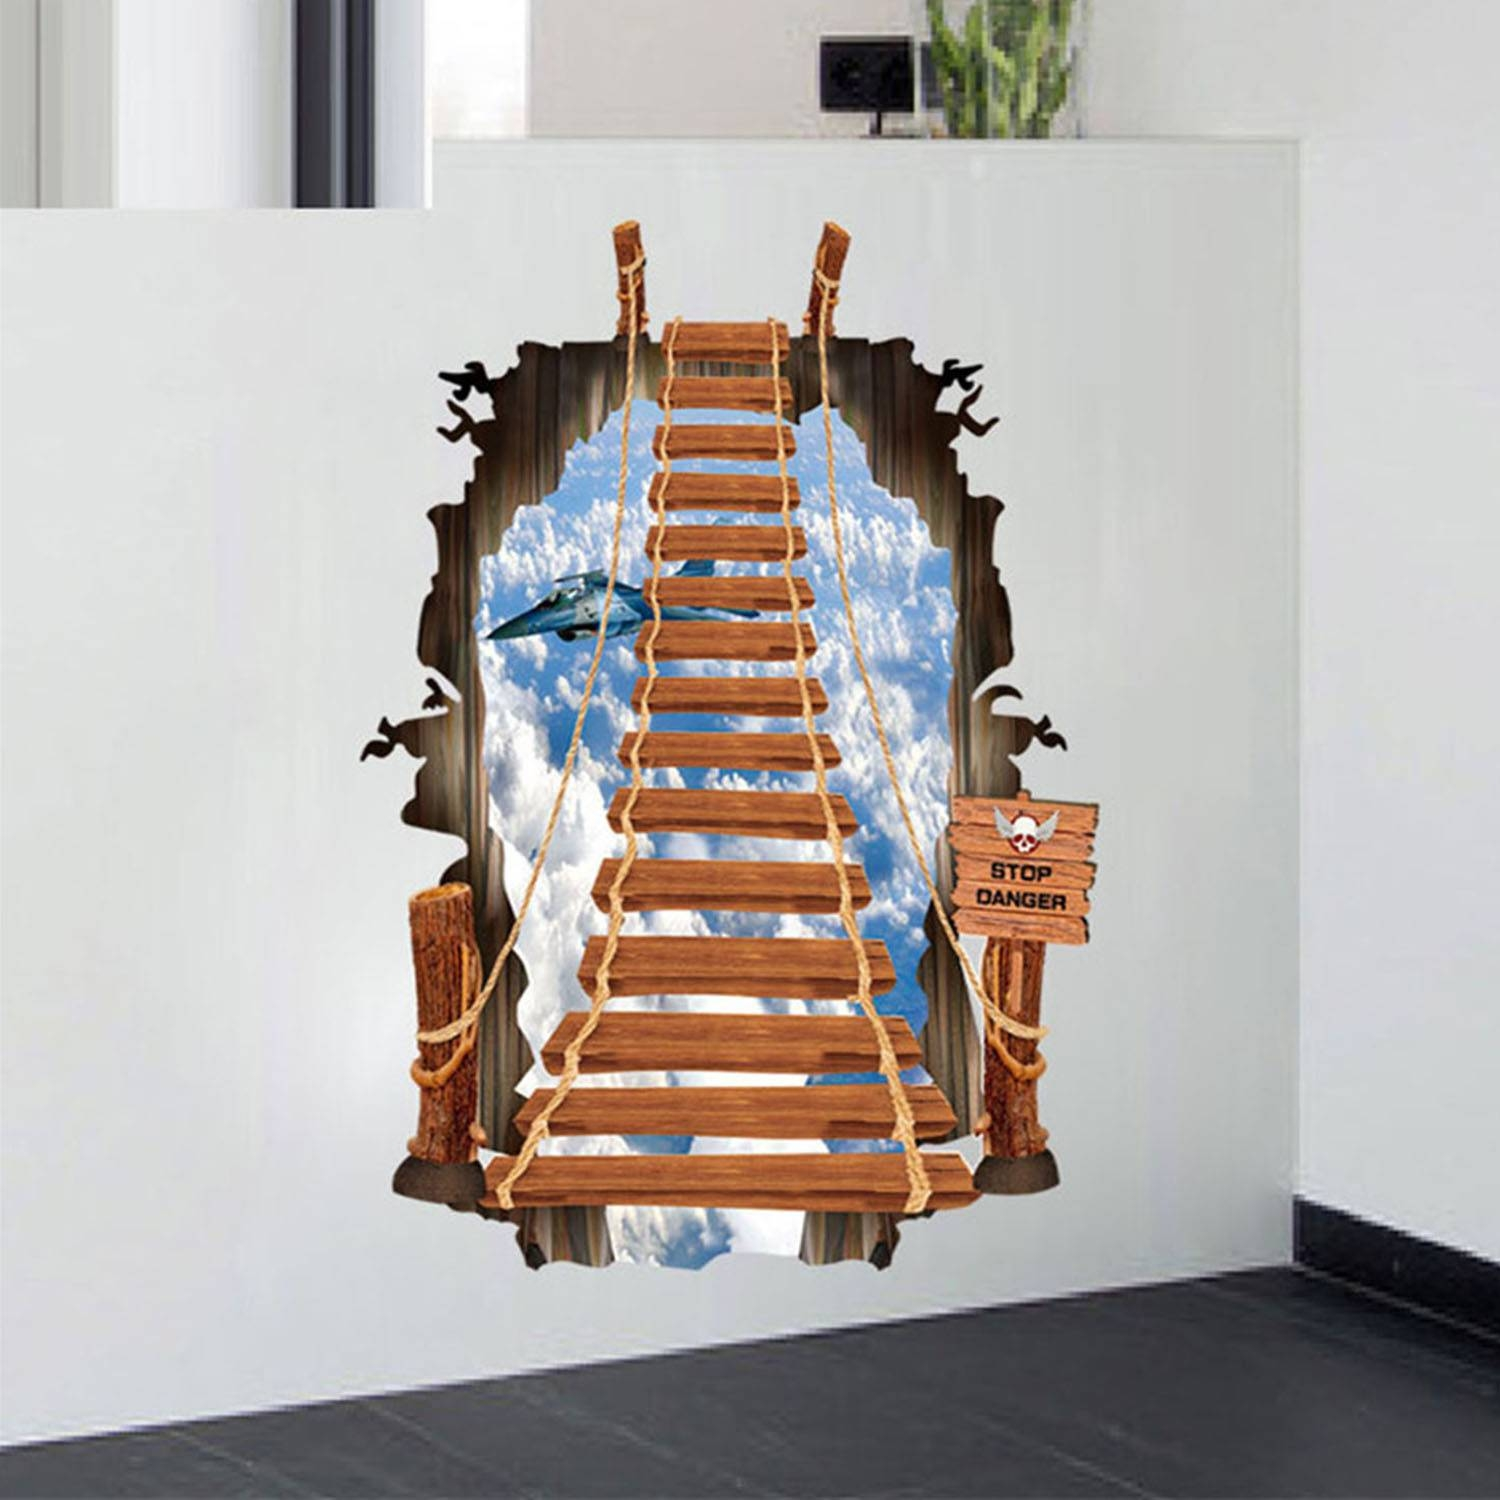 3D Wall Stickers Ladder Style Diy Wall Decals For Home Drawing Within Most Up To Date Minecraft 3D Wall Art (Gallery 13 of 20)